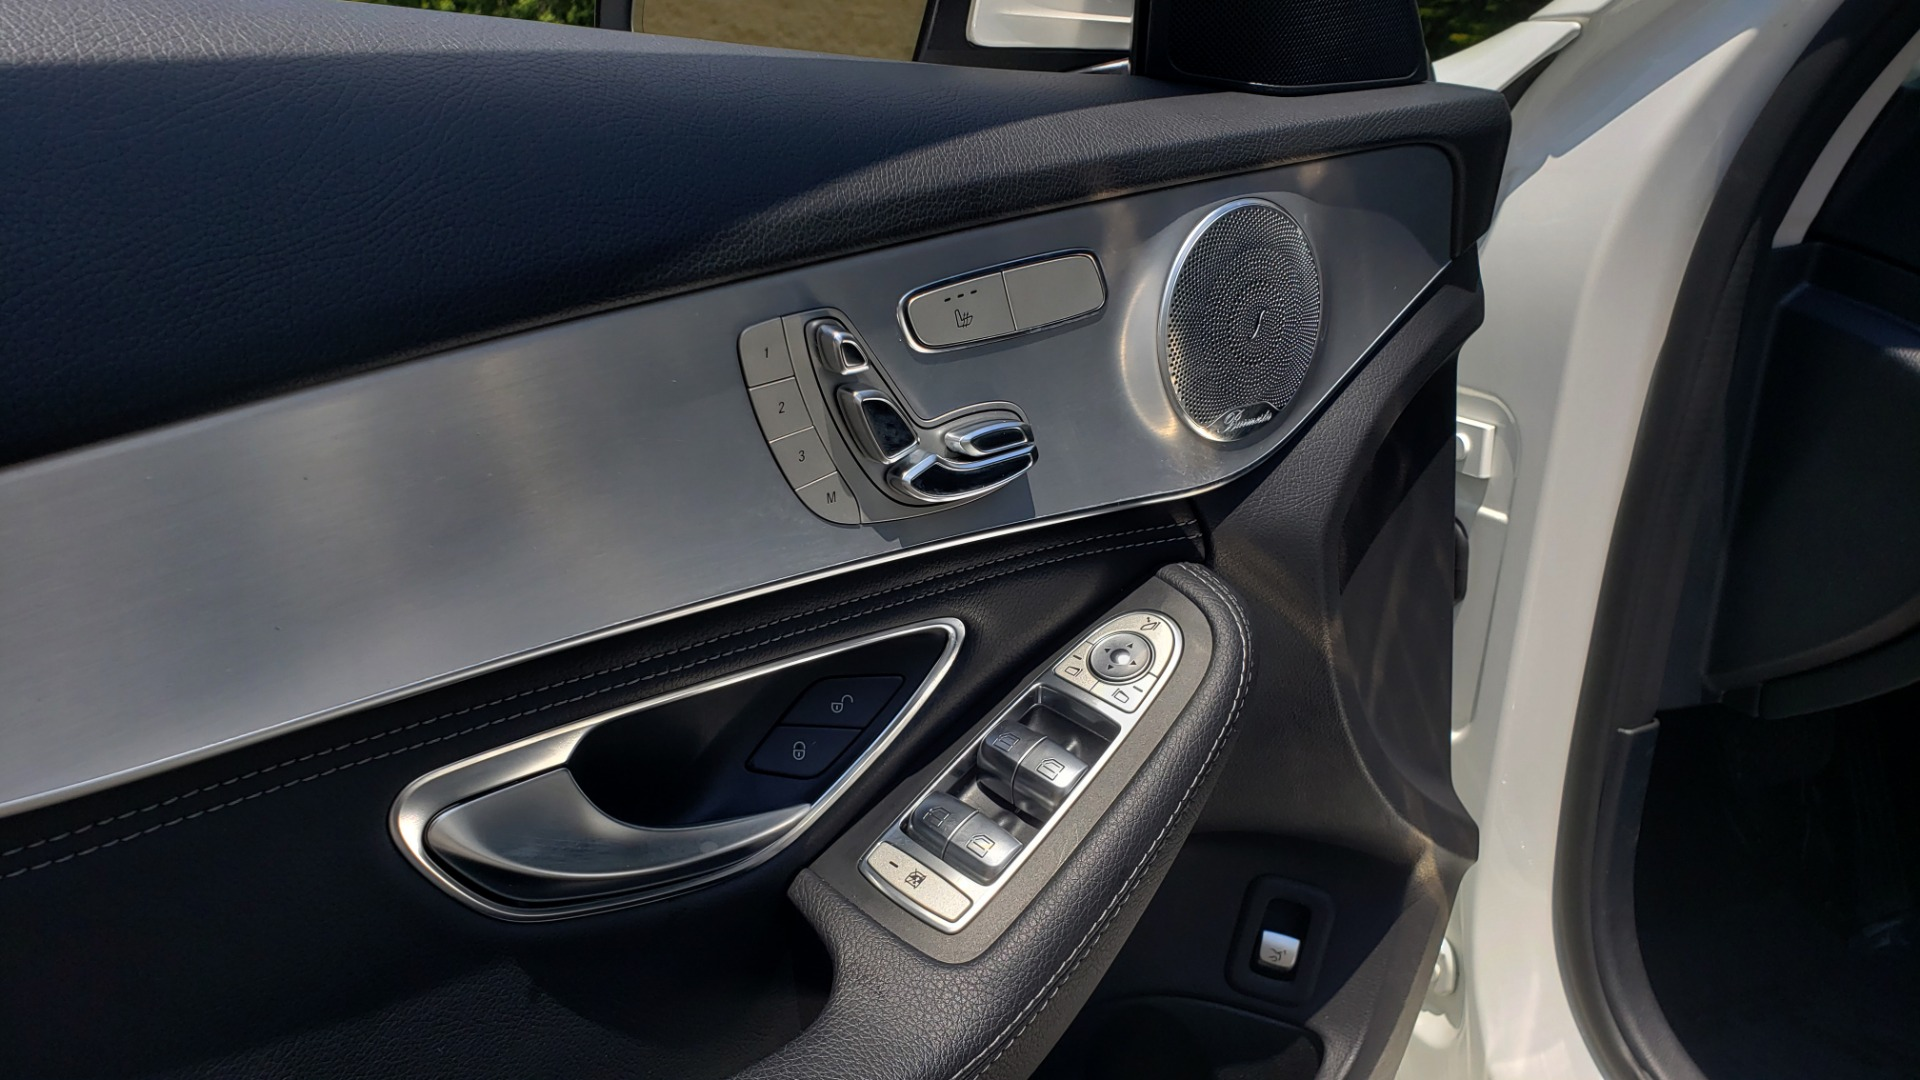 Used 2016 Mercedes-Benz C-CLASS C 300 4MATIC PREMIUM / PANO-ROOF / MULTI MEDIA PKG / REARVIEW for sale Sold at Formula Imports in Charlotte NC 28227 29